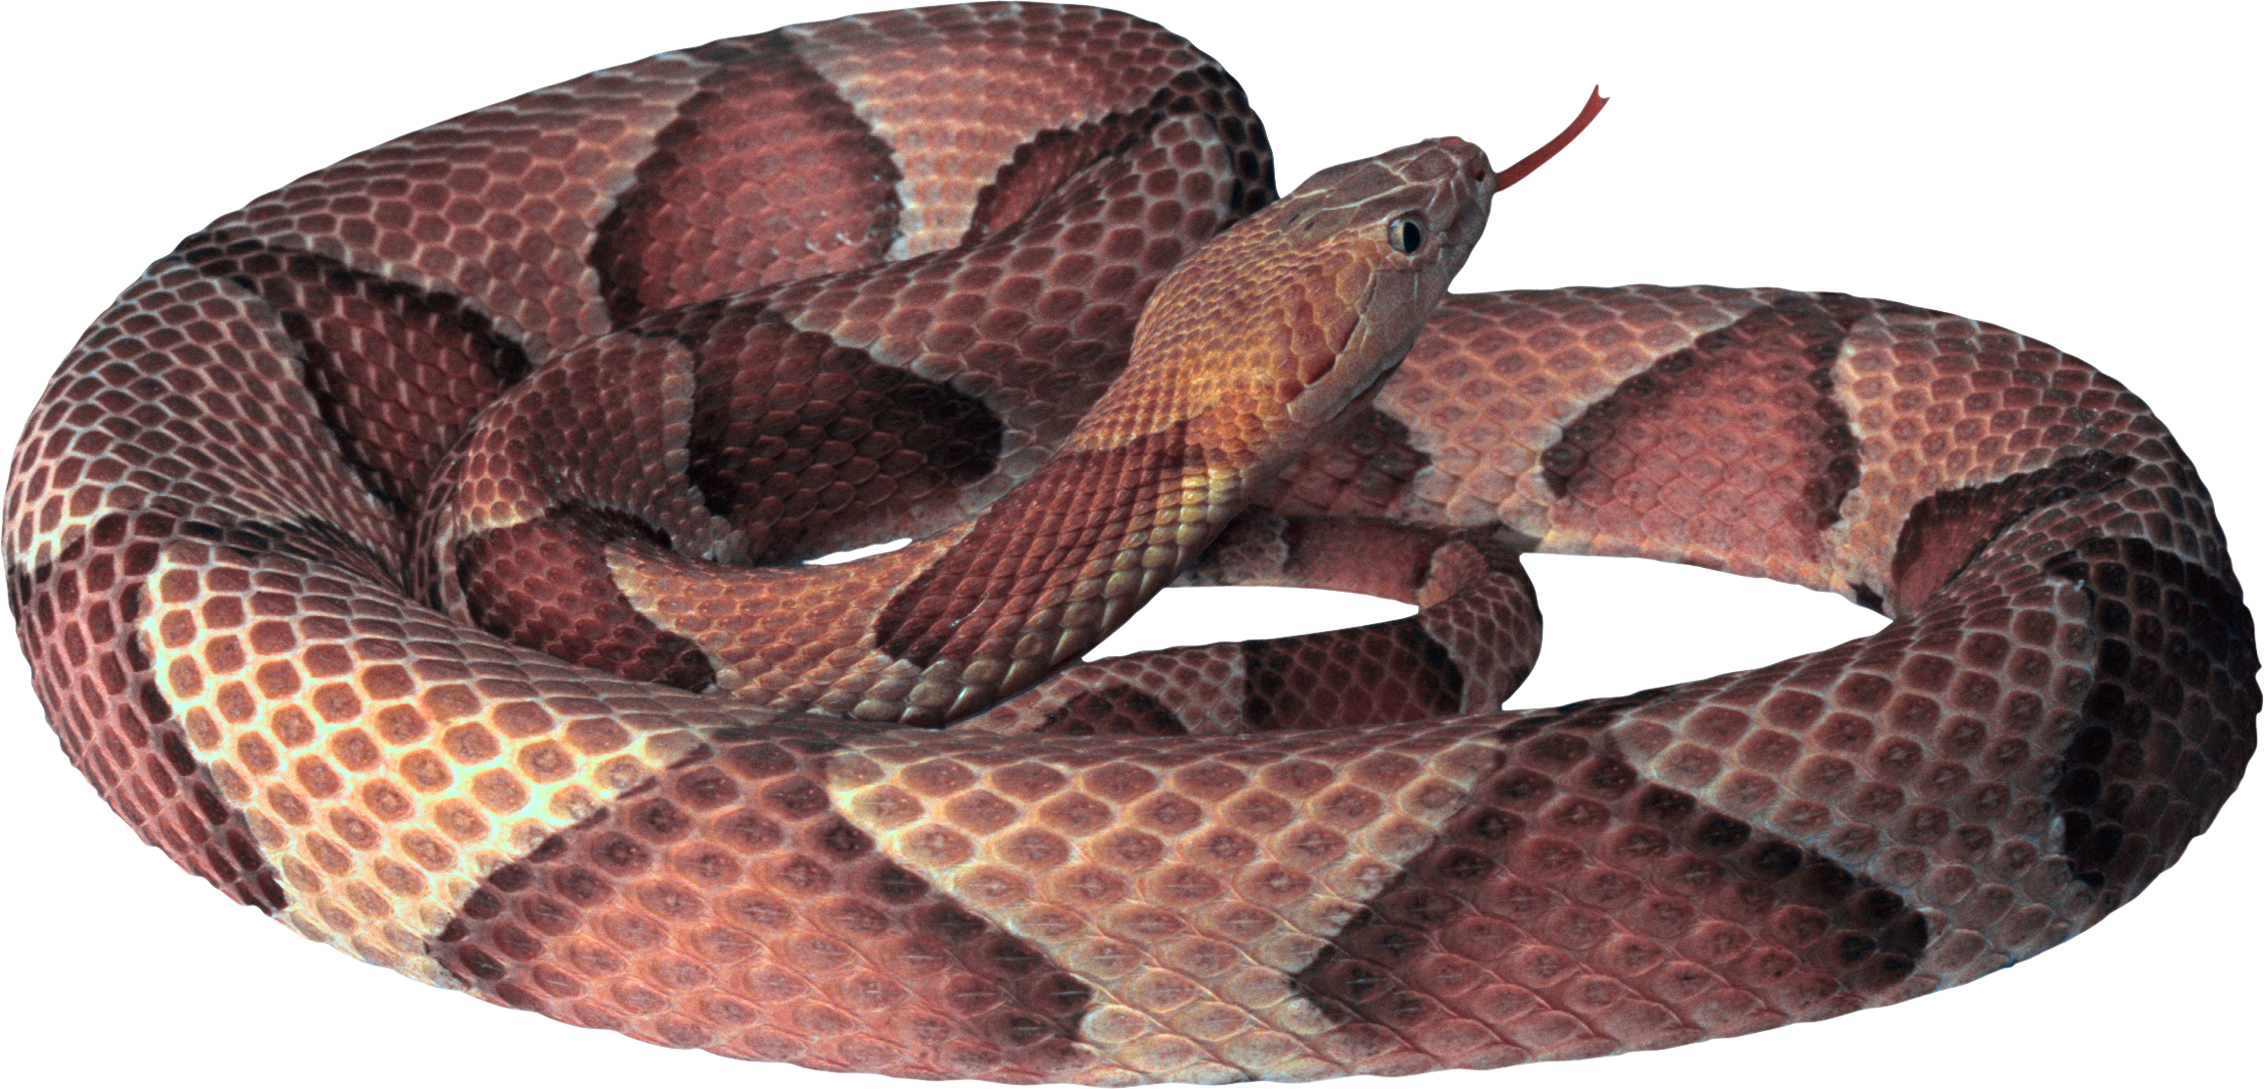 Snake clipart poison. Bites a man cambly